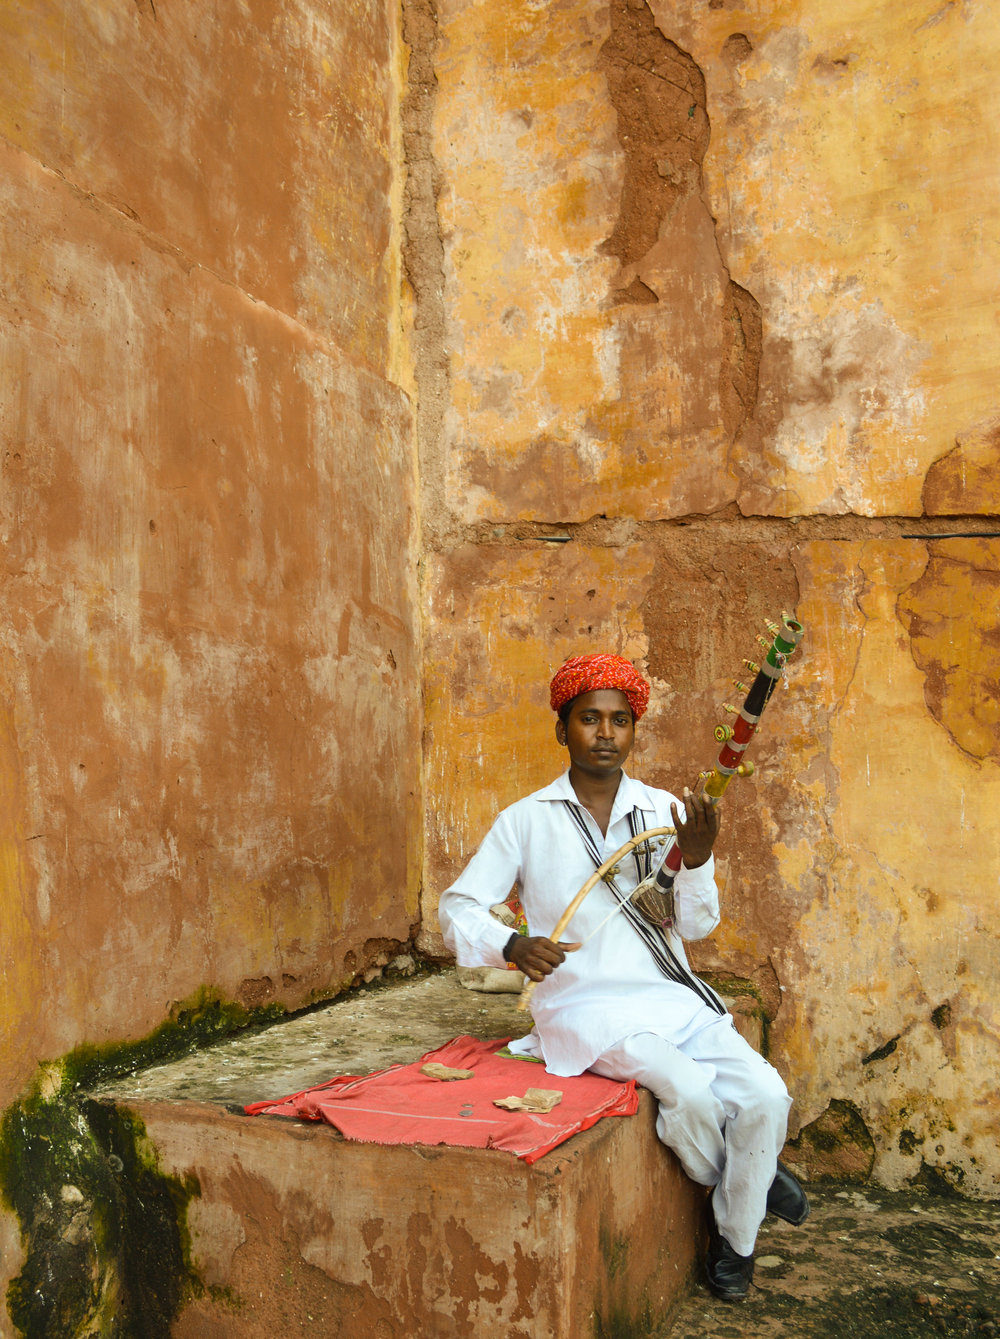 Folk musicians of Rajasthan - FeaturetteThrough all the forts, silver jewellery, daal bhati churma and laal maas, it's these artists in Rajasthan's palaces and forts that catch a photographer's fancy.